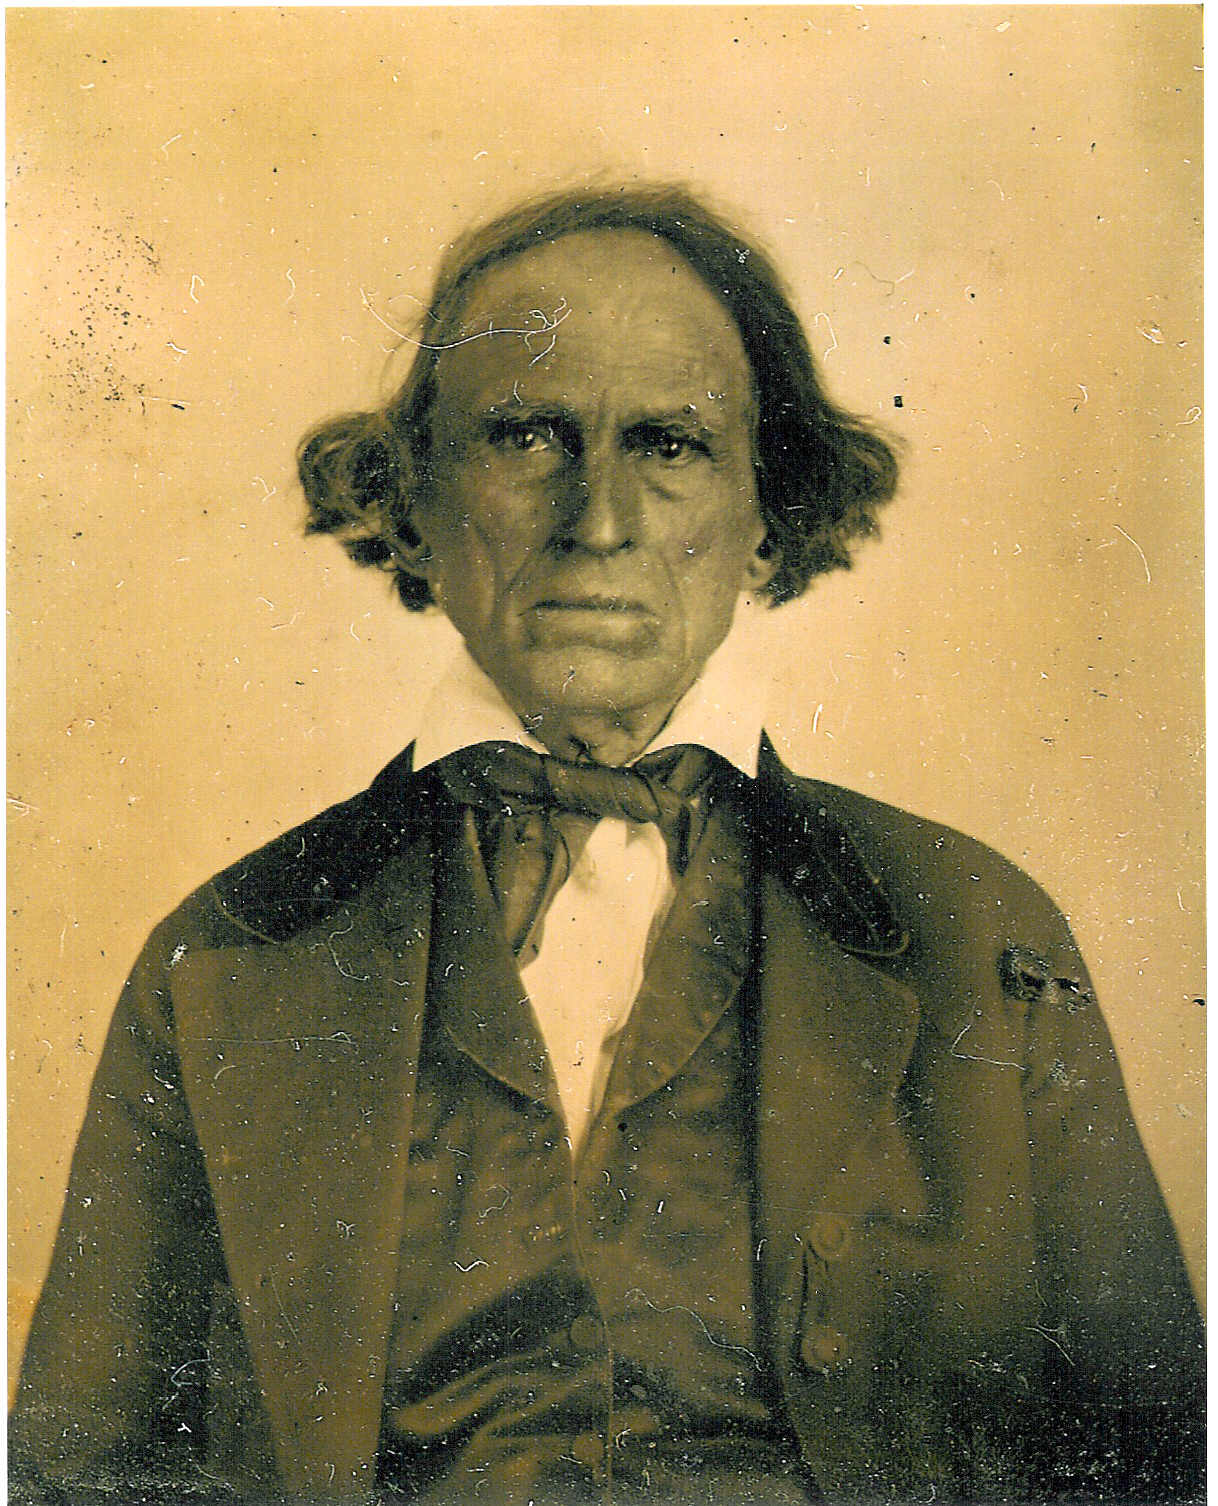 kentucky kindred genealogy his son benjamin franklin linton